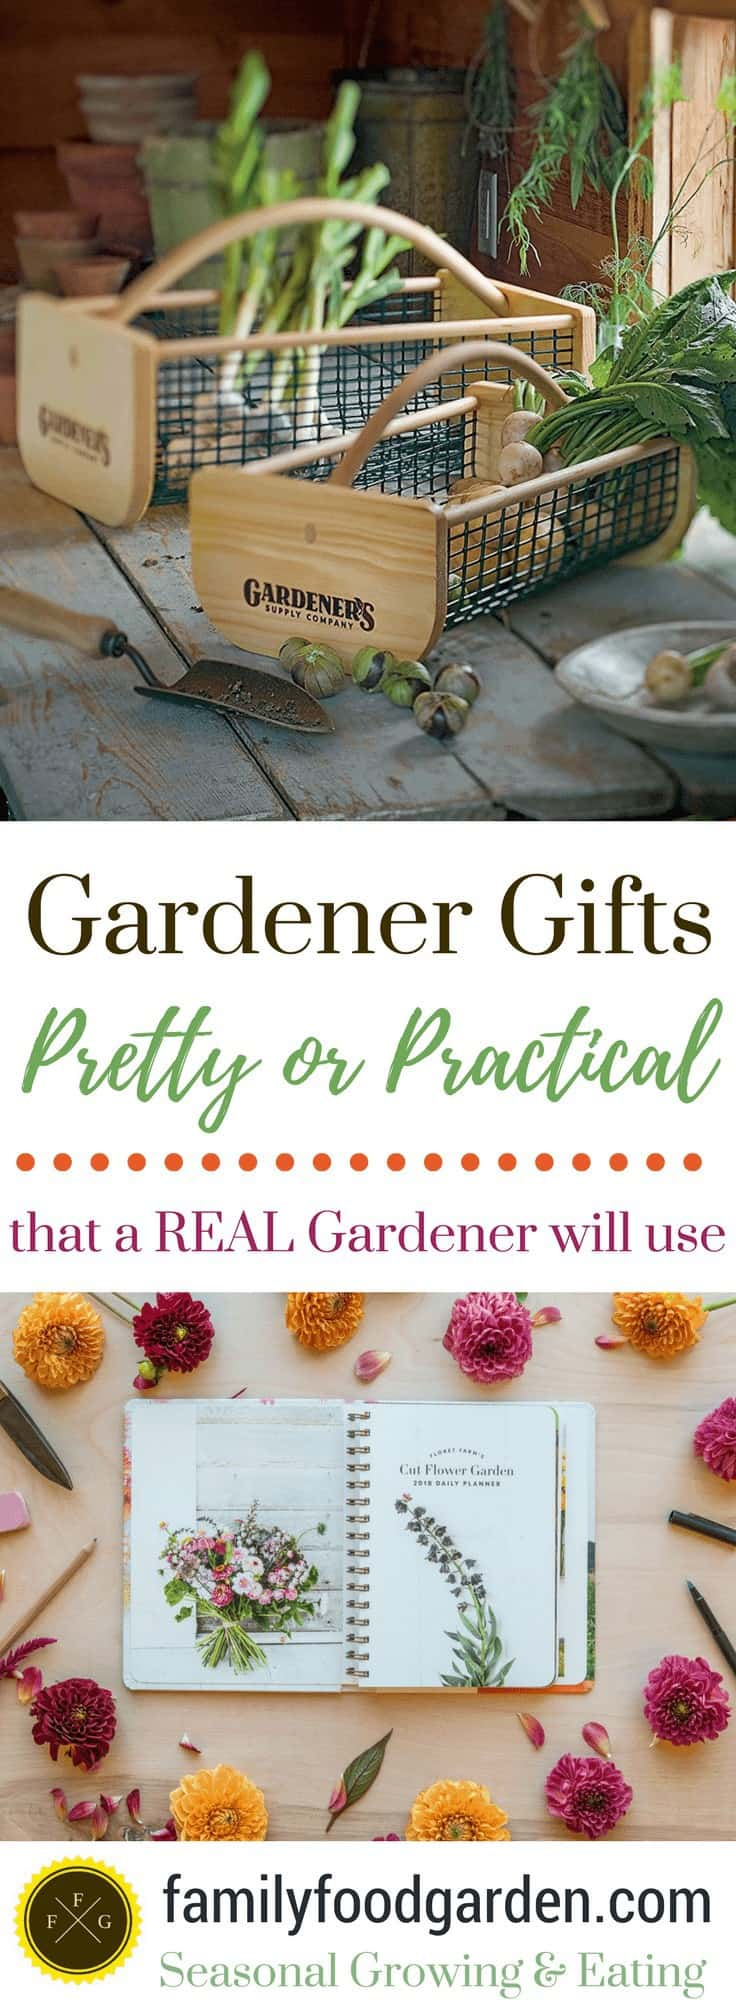 Fantastic gifts for gardeners #gardenergifts #momgifts #gardening #christmasgifts #christmaspresents #homesteadgifts